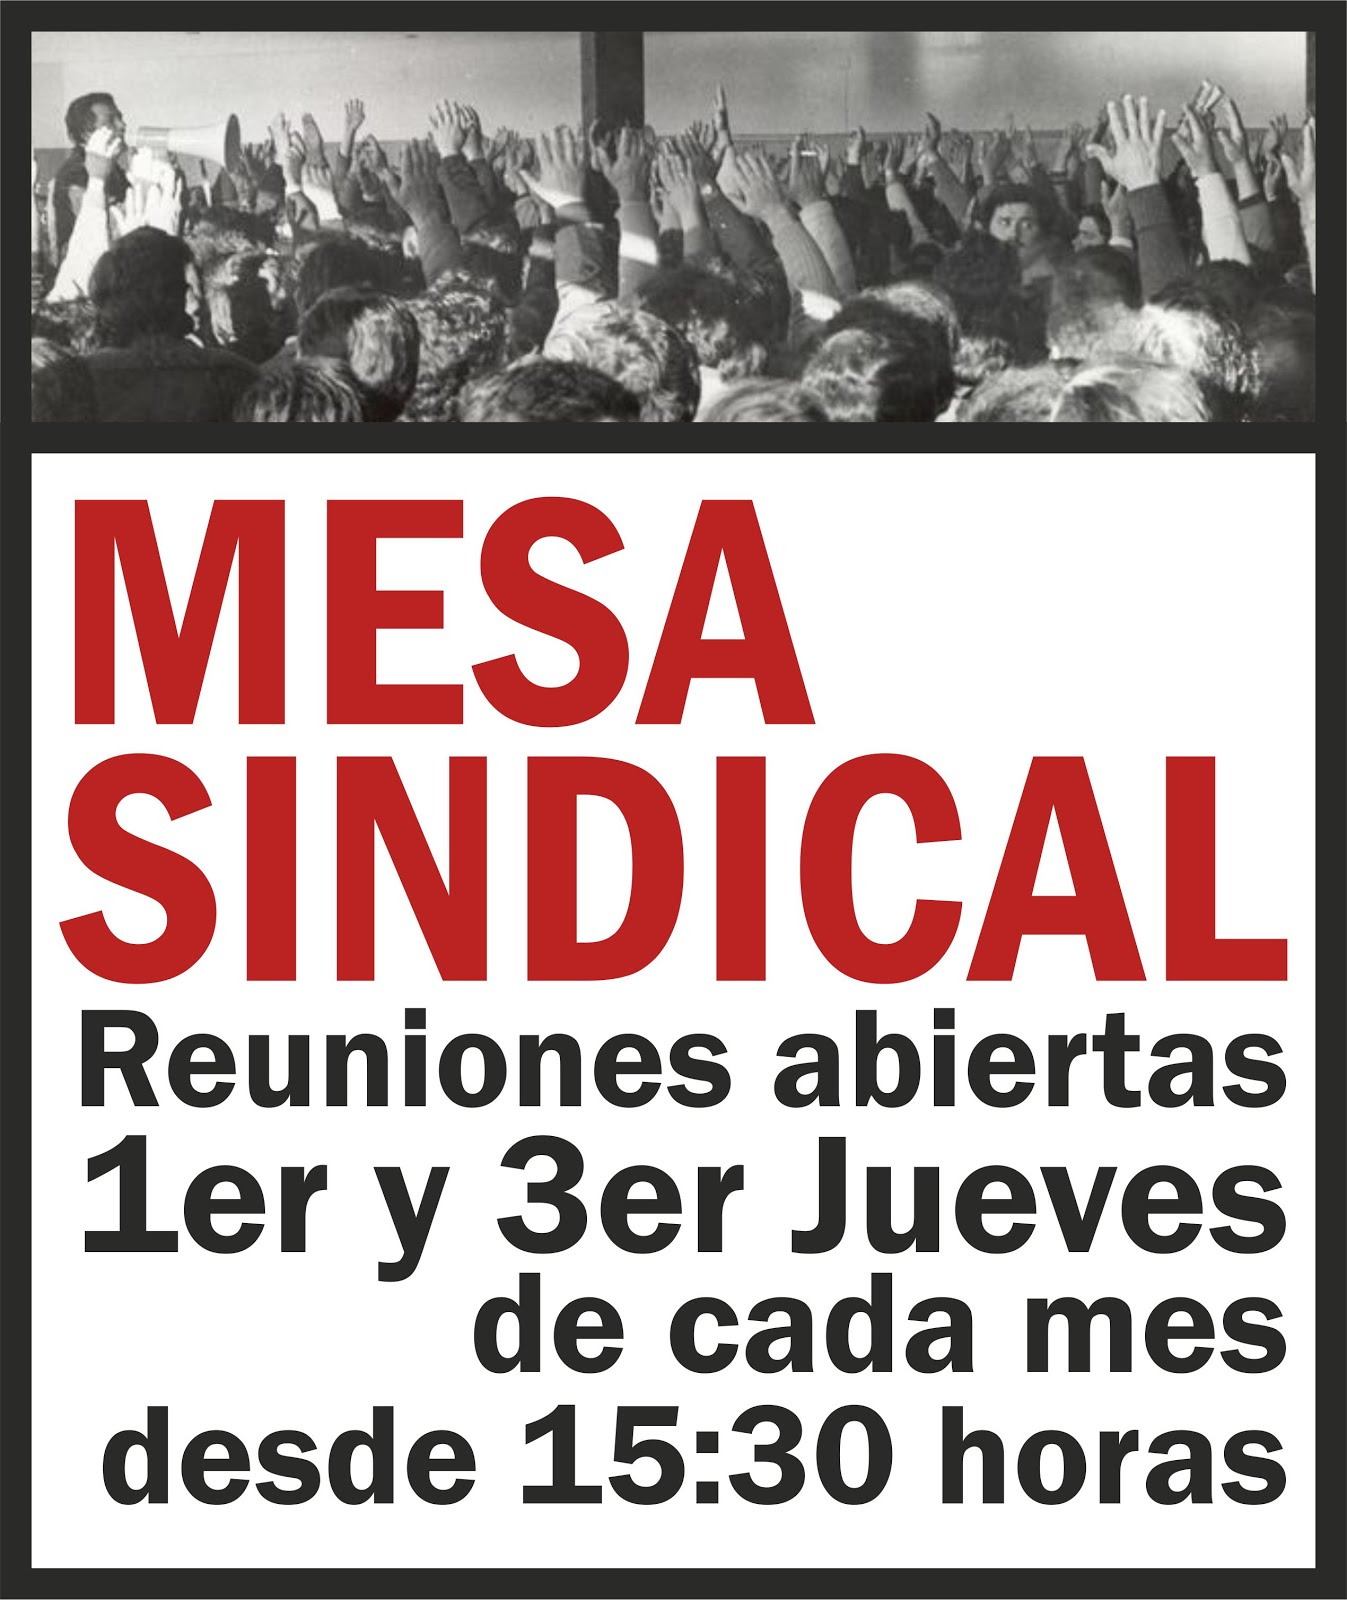 MESA SINDICAL